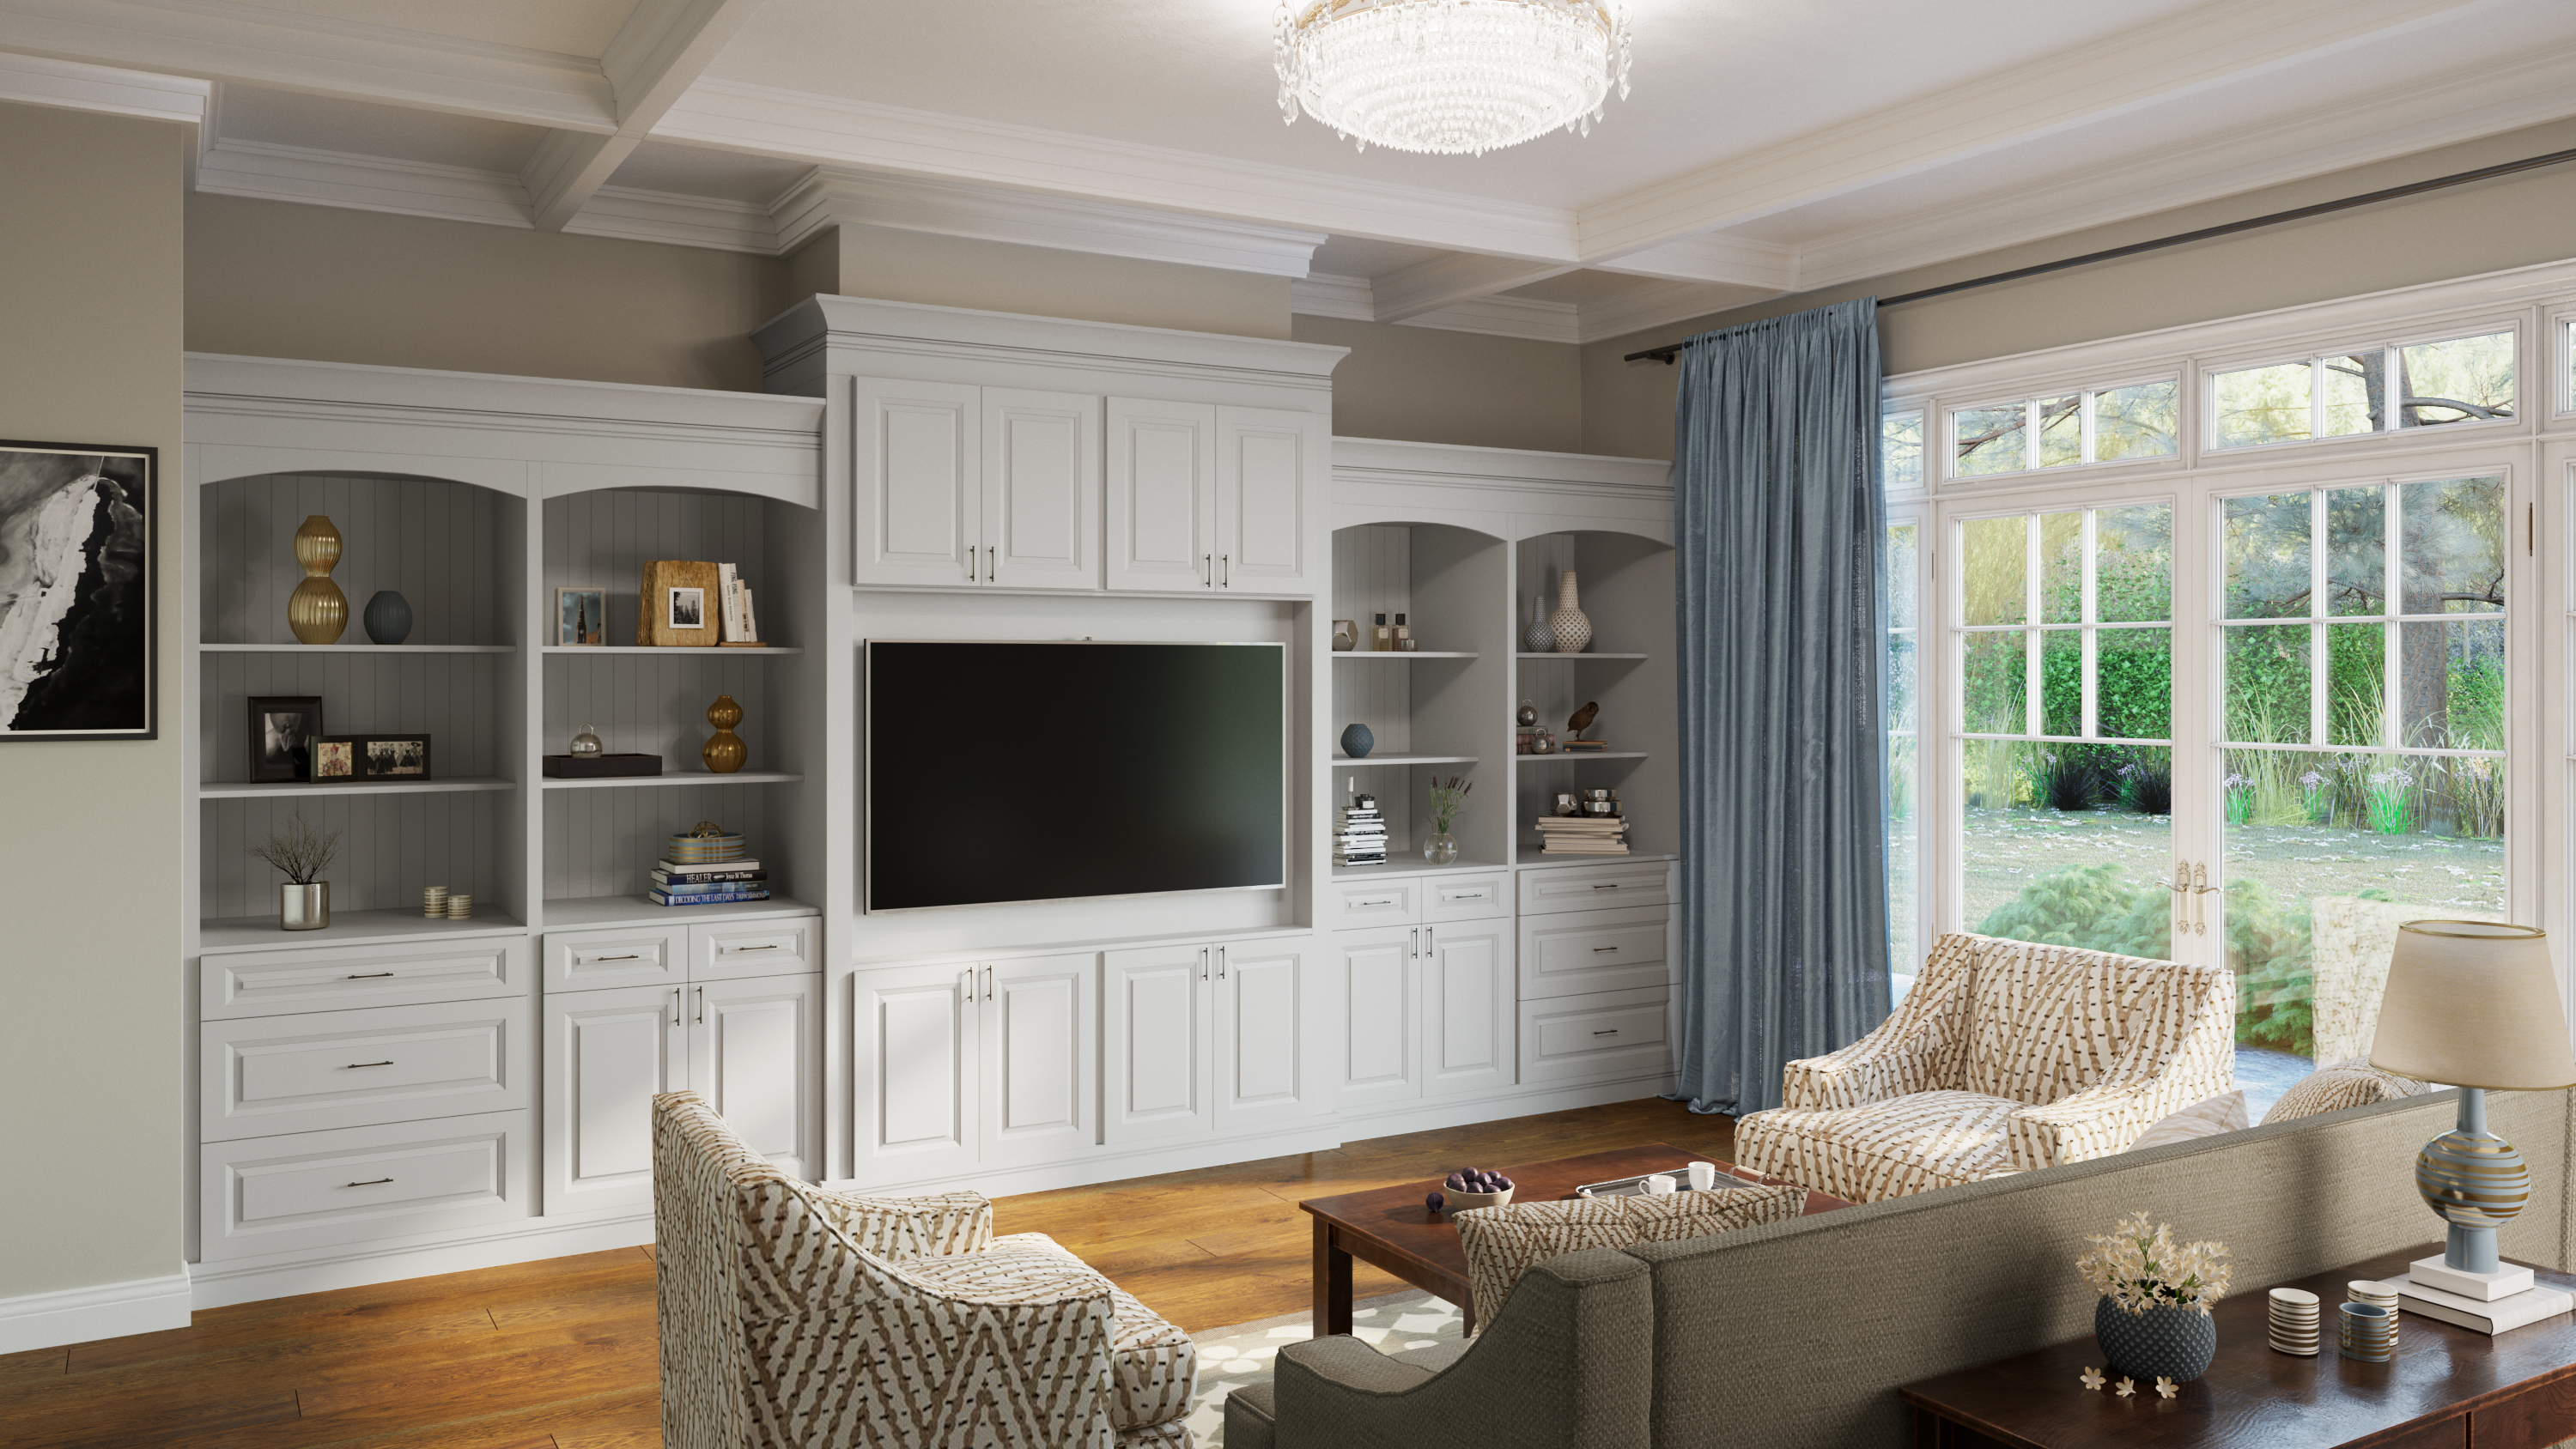 Tacoma Dusk Built-In Cabinets